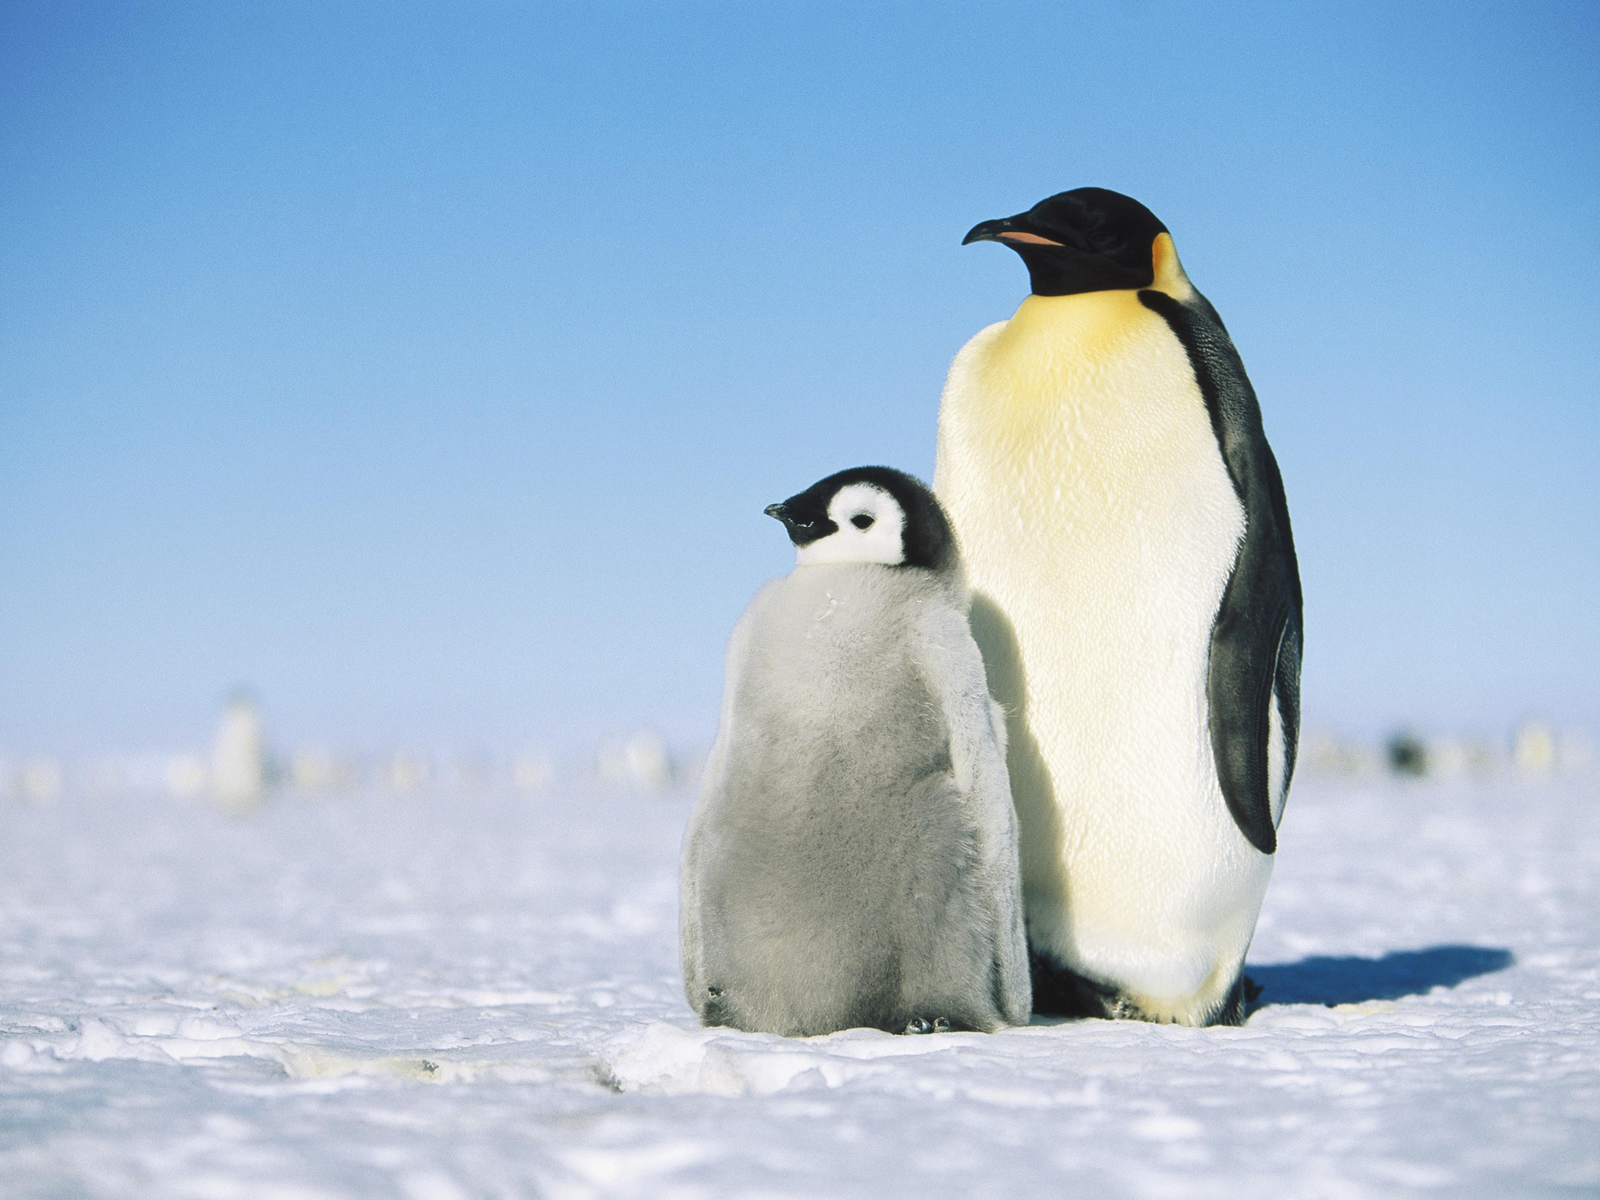 Cute Baby Penguins In Lov HD Wallpaper Background Images 1600x1200